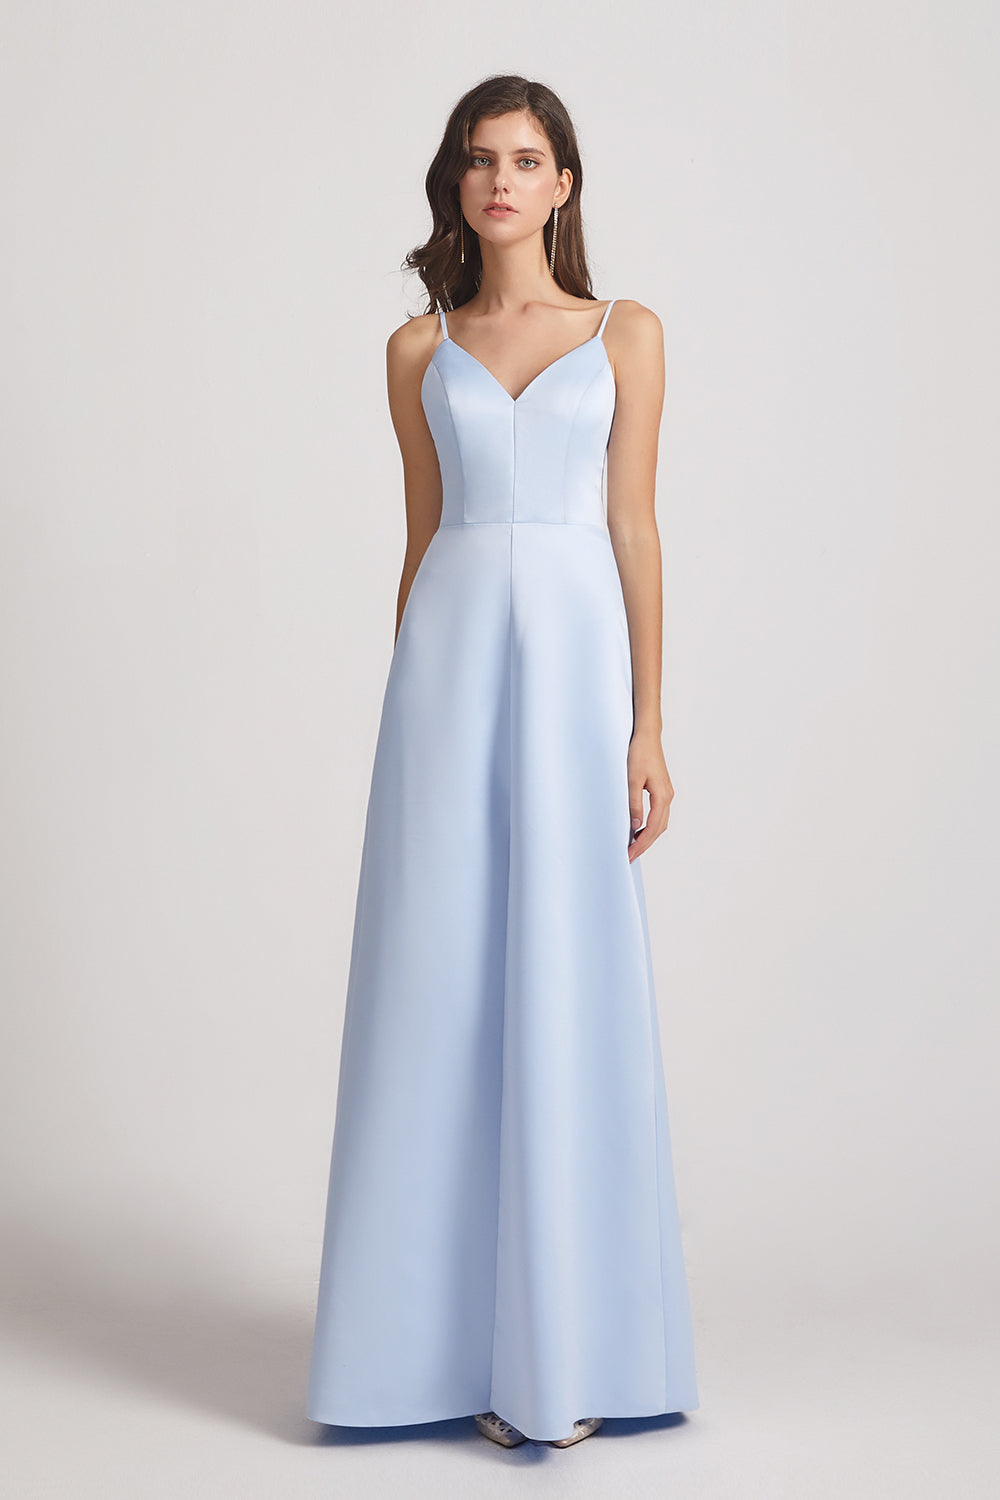 spaghetti straps v-neck satin bridesmaid dress